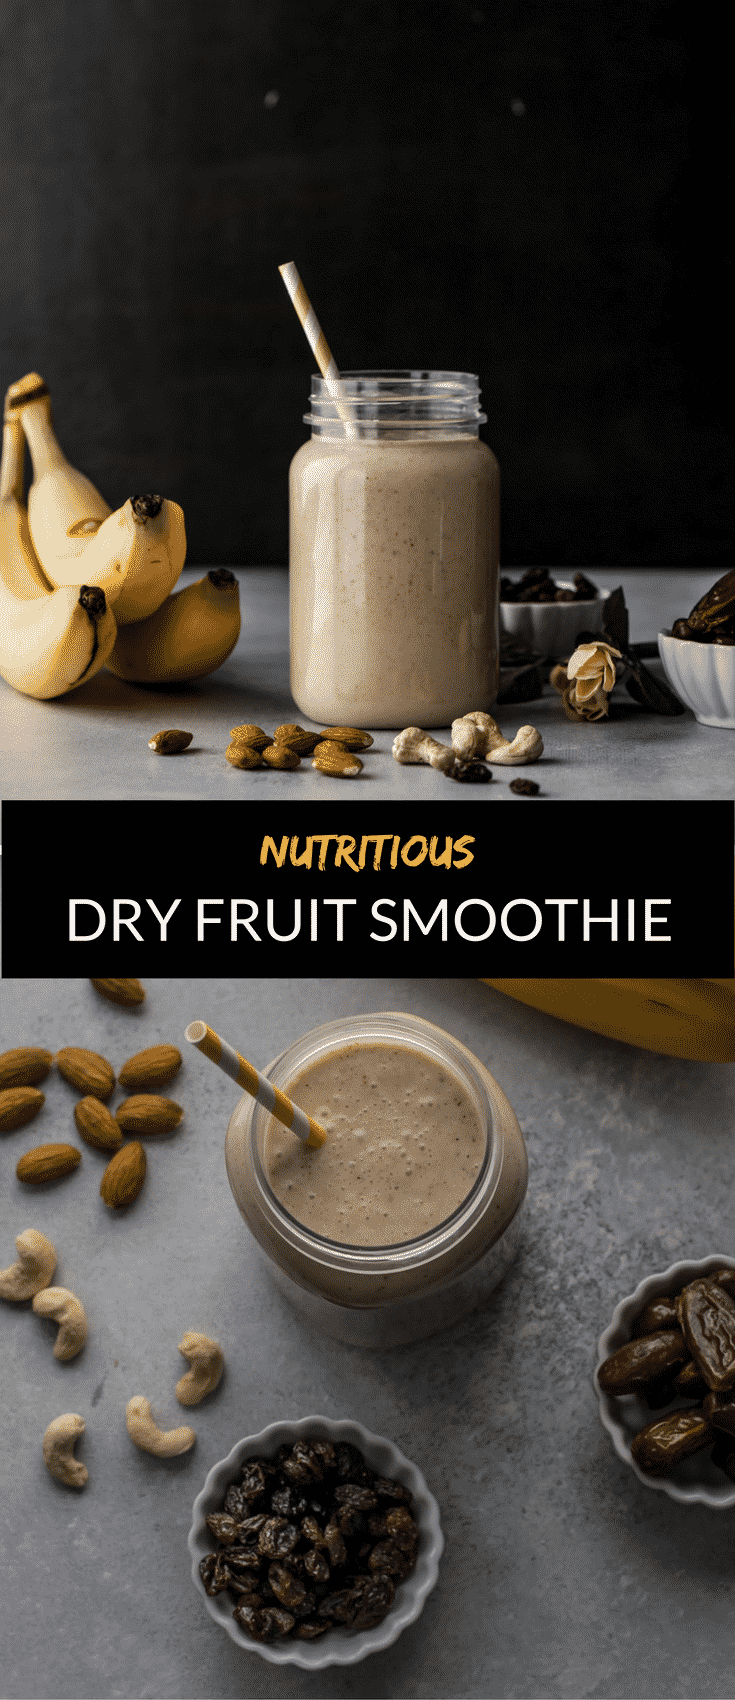 Dry fruit smoothie is a great way to combine nutritious milk and dry fruits to create a wholesome meal for any time of the day.